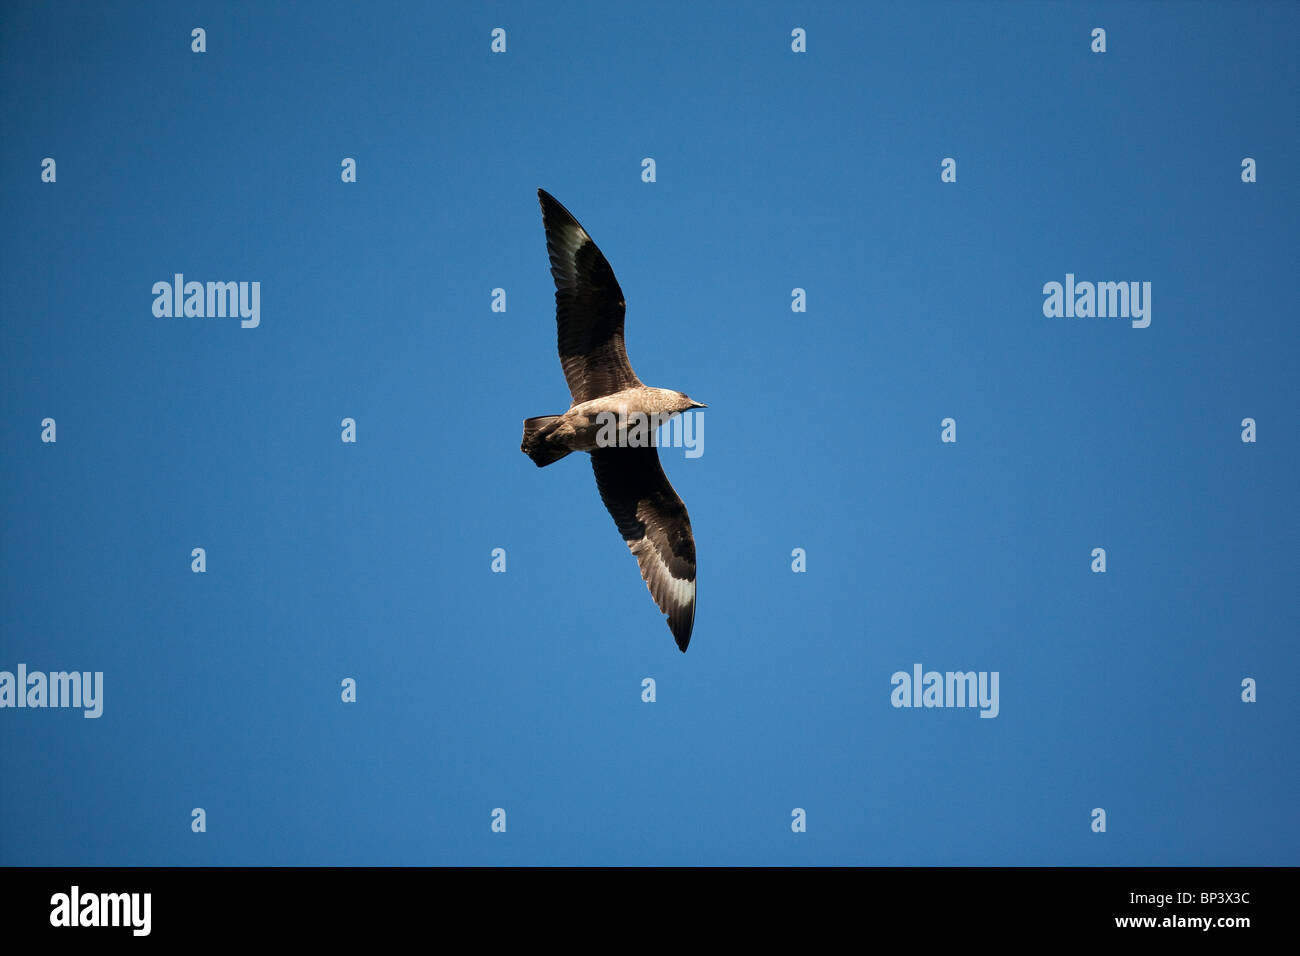 Great skua in flight above the bird sanctuary Runde island on the west coast of Norway. - Stock Image